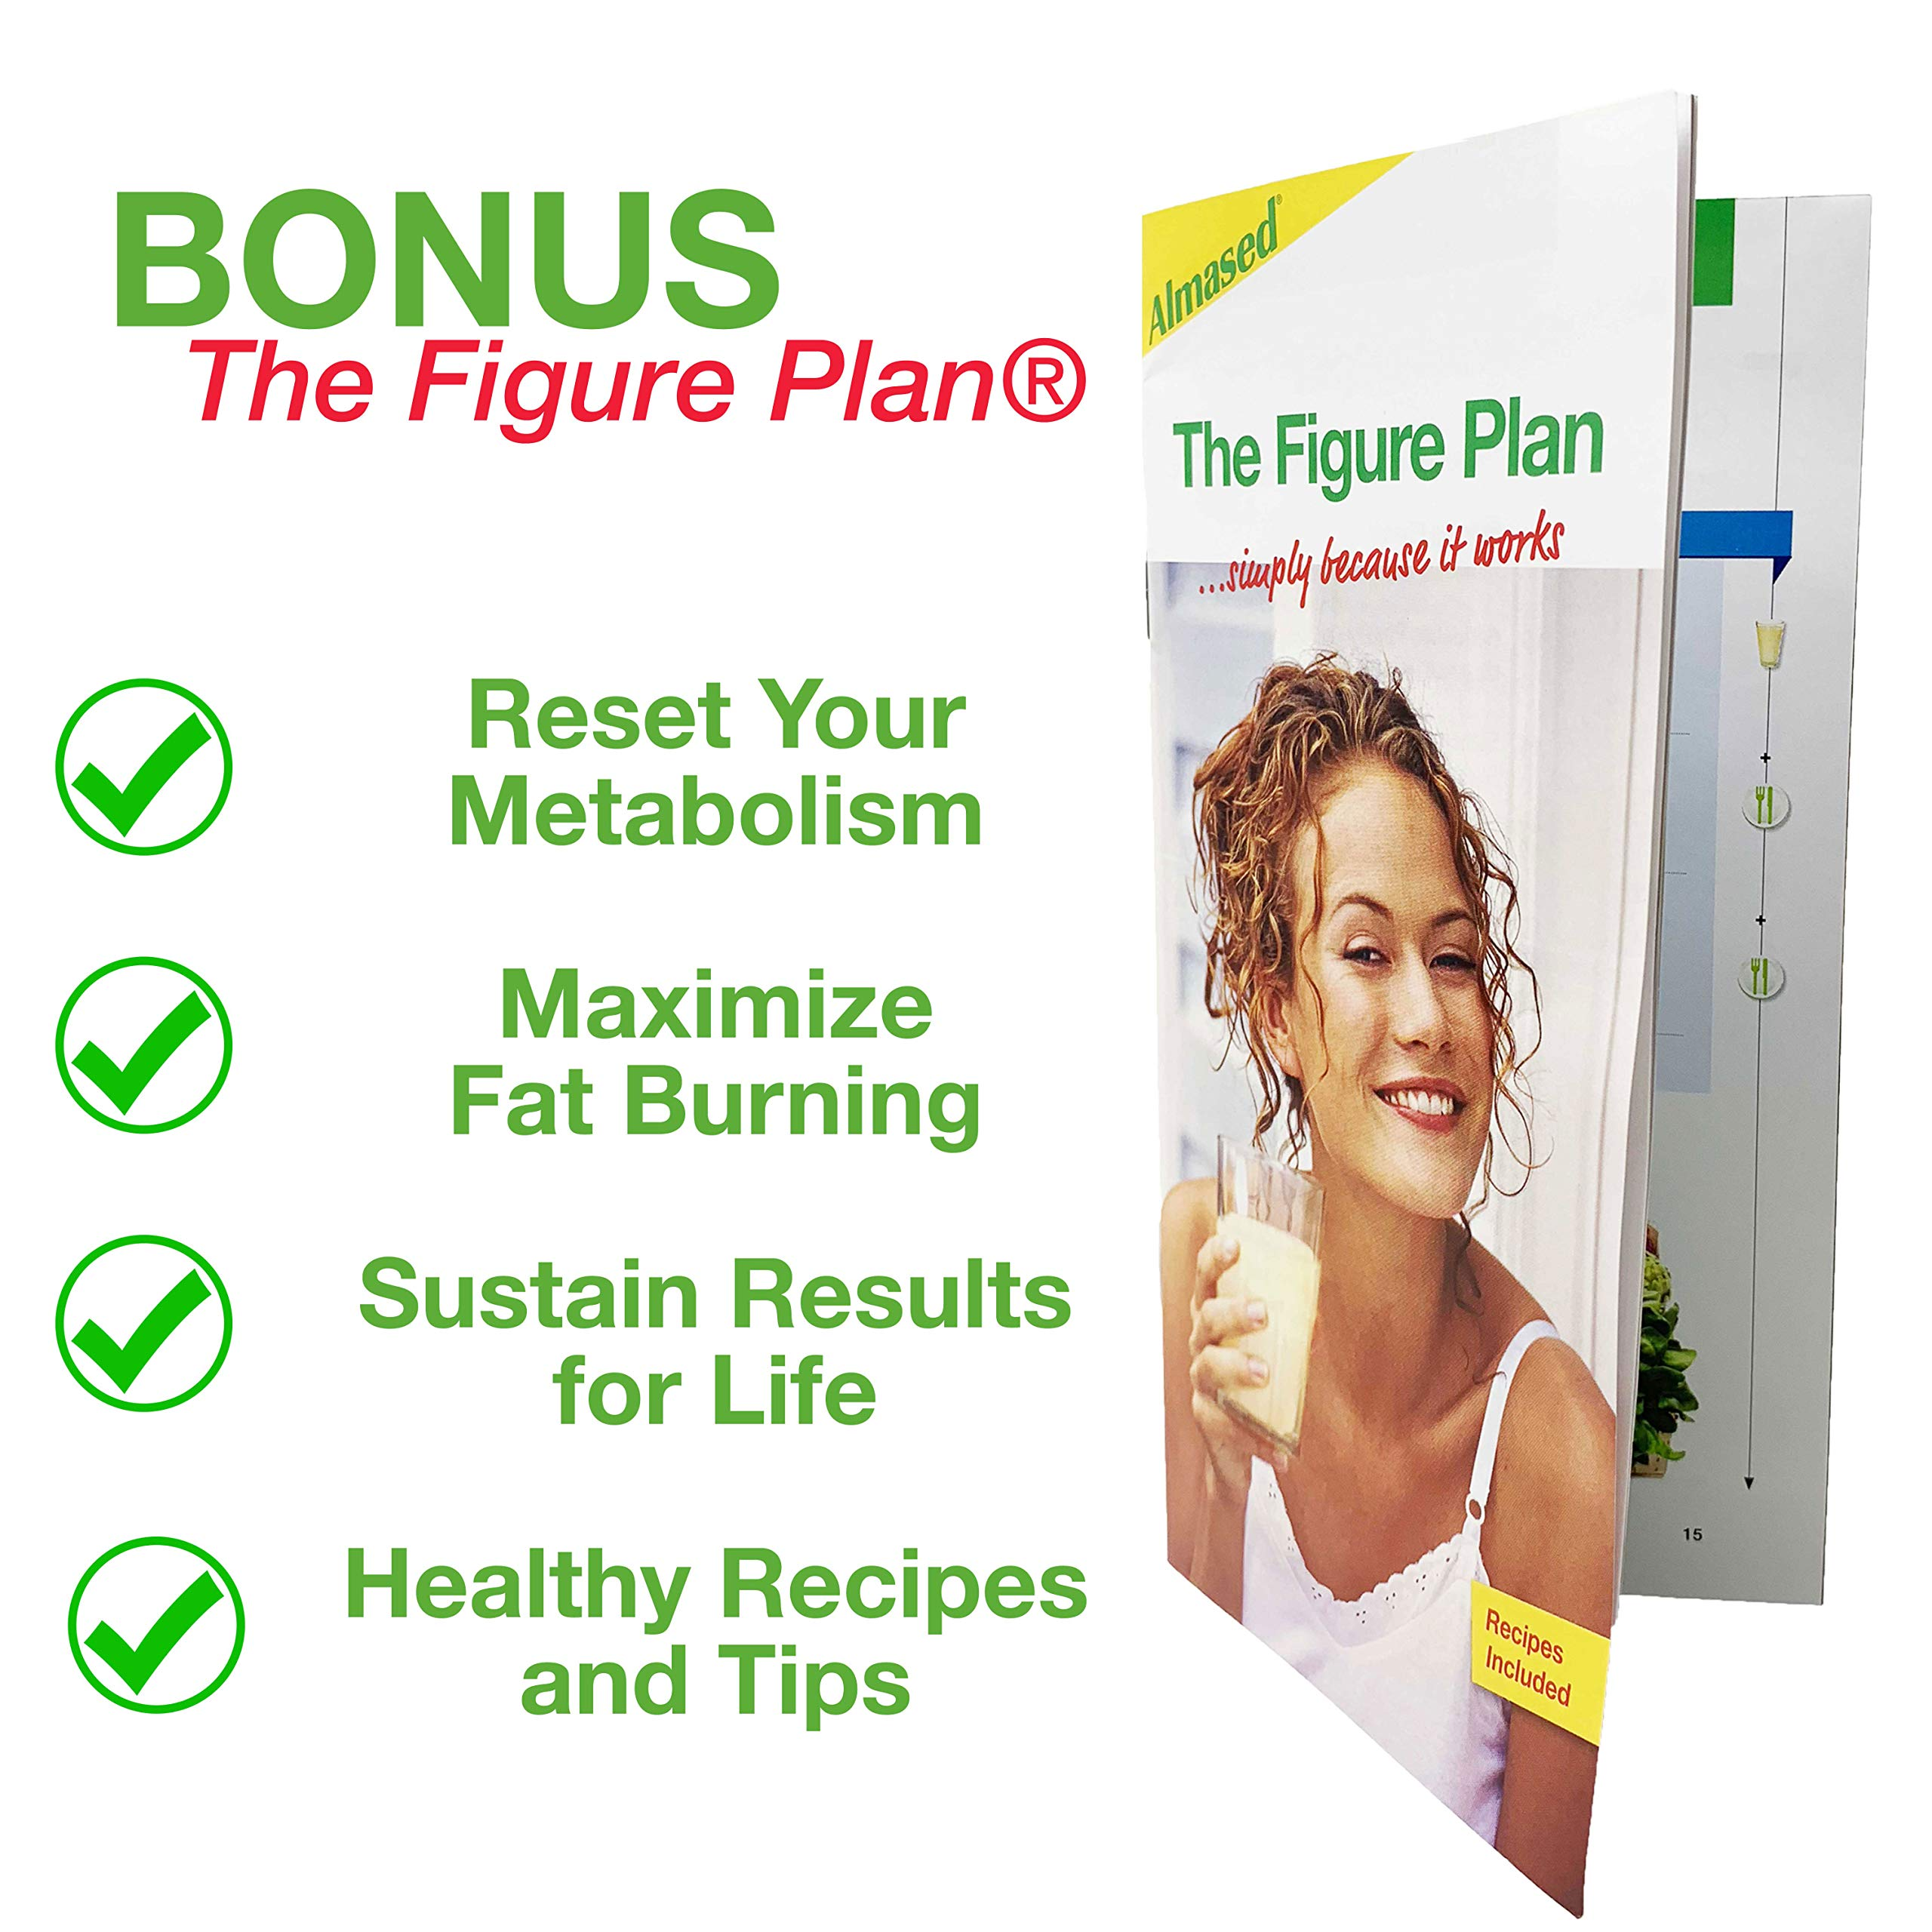 Almased Meal Replacement Shakes -Plant Based Protein Powder - Weight Management Shake and Meal Replacement - All Natural, Gluten Free, No Sugar Added (3 pack Bonus Diet Book and Stress Ball)        by Almased (Image #3)